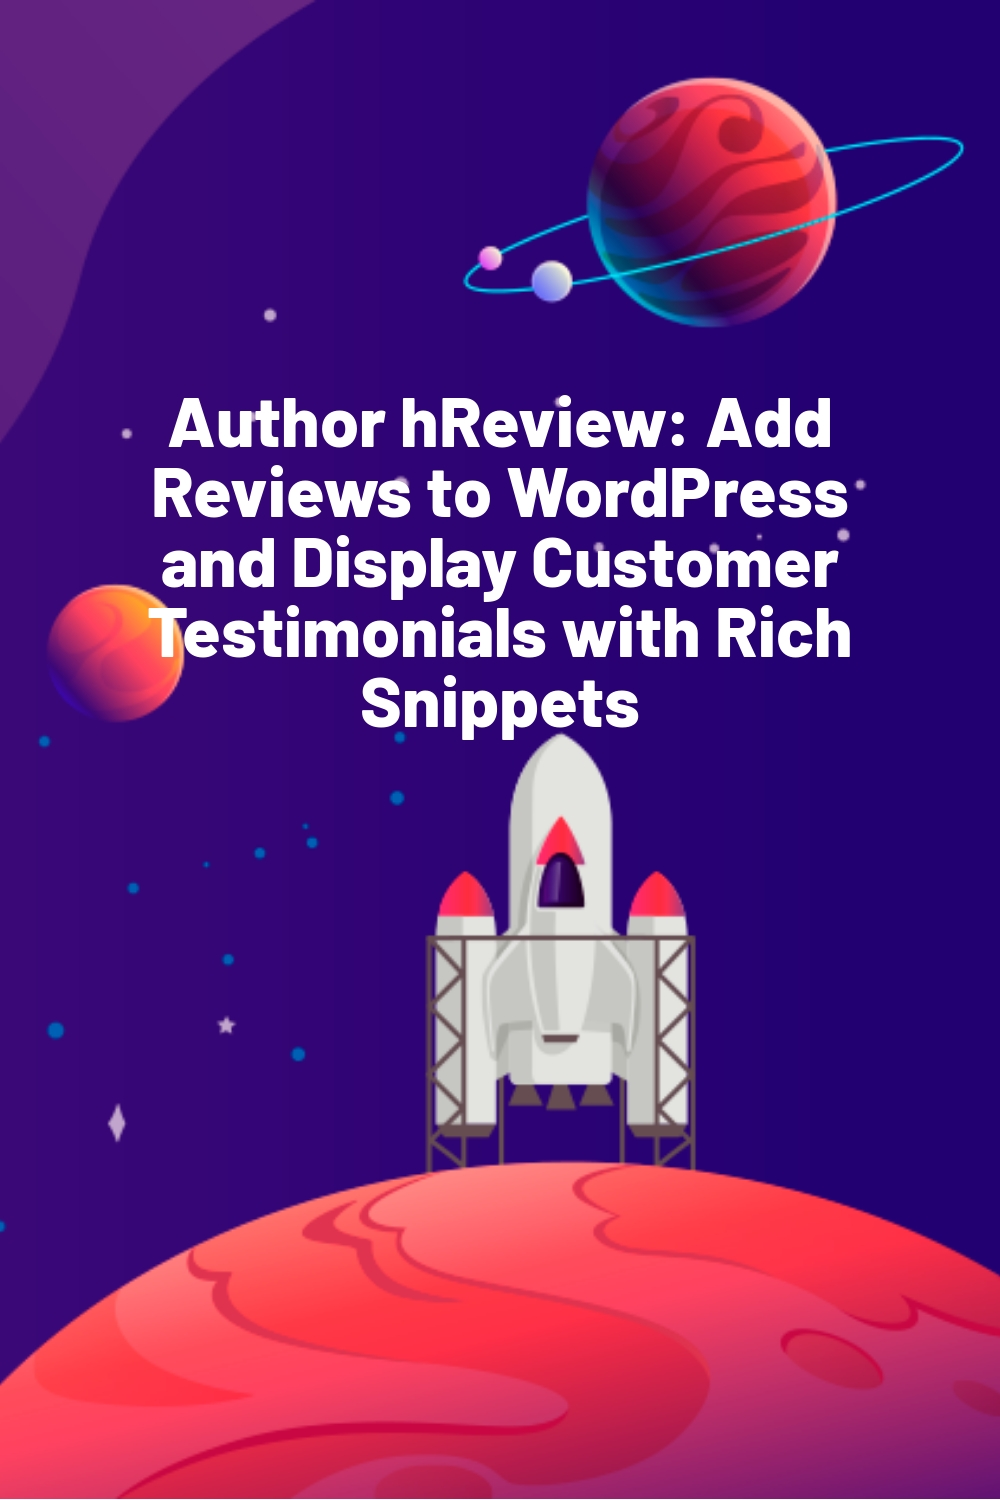 Author hReview: Add Reviews to WordPress and Display Customer Testimonials with Rich Snippets